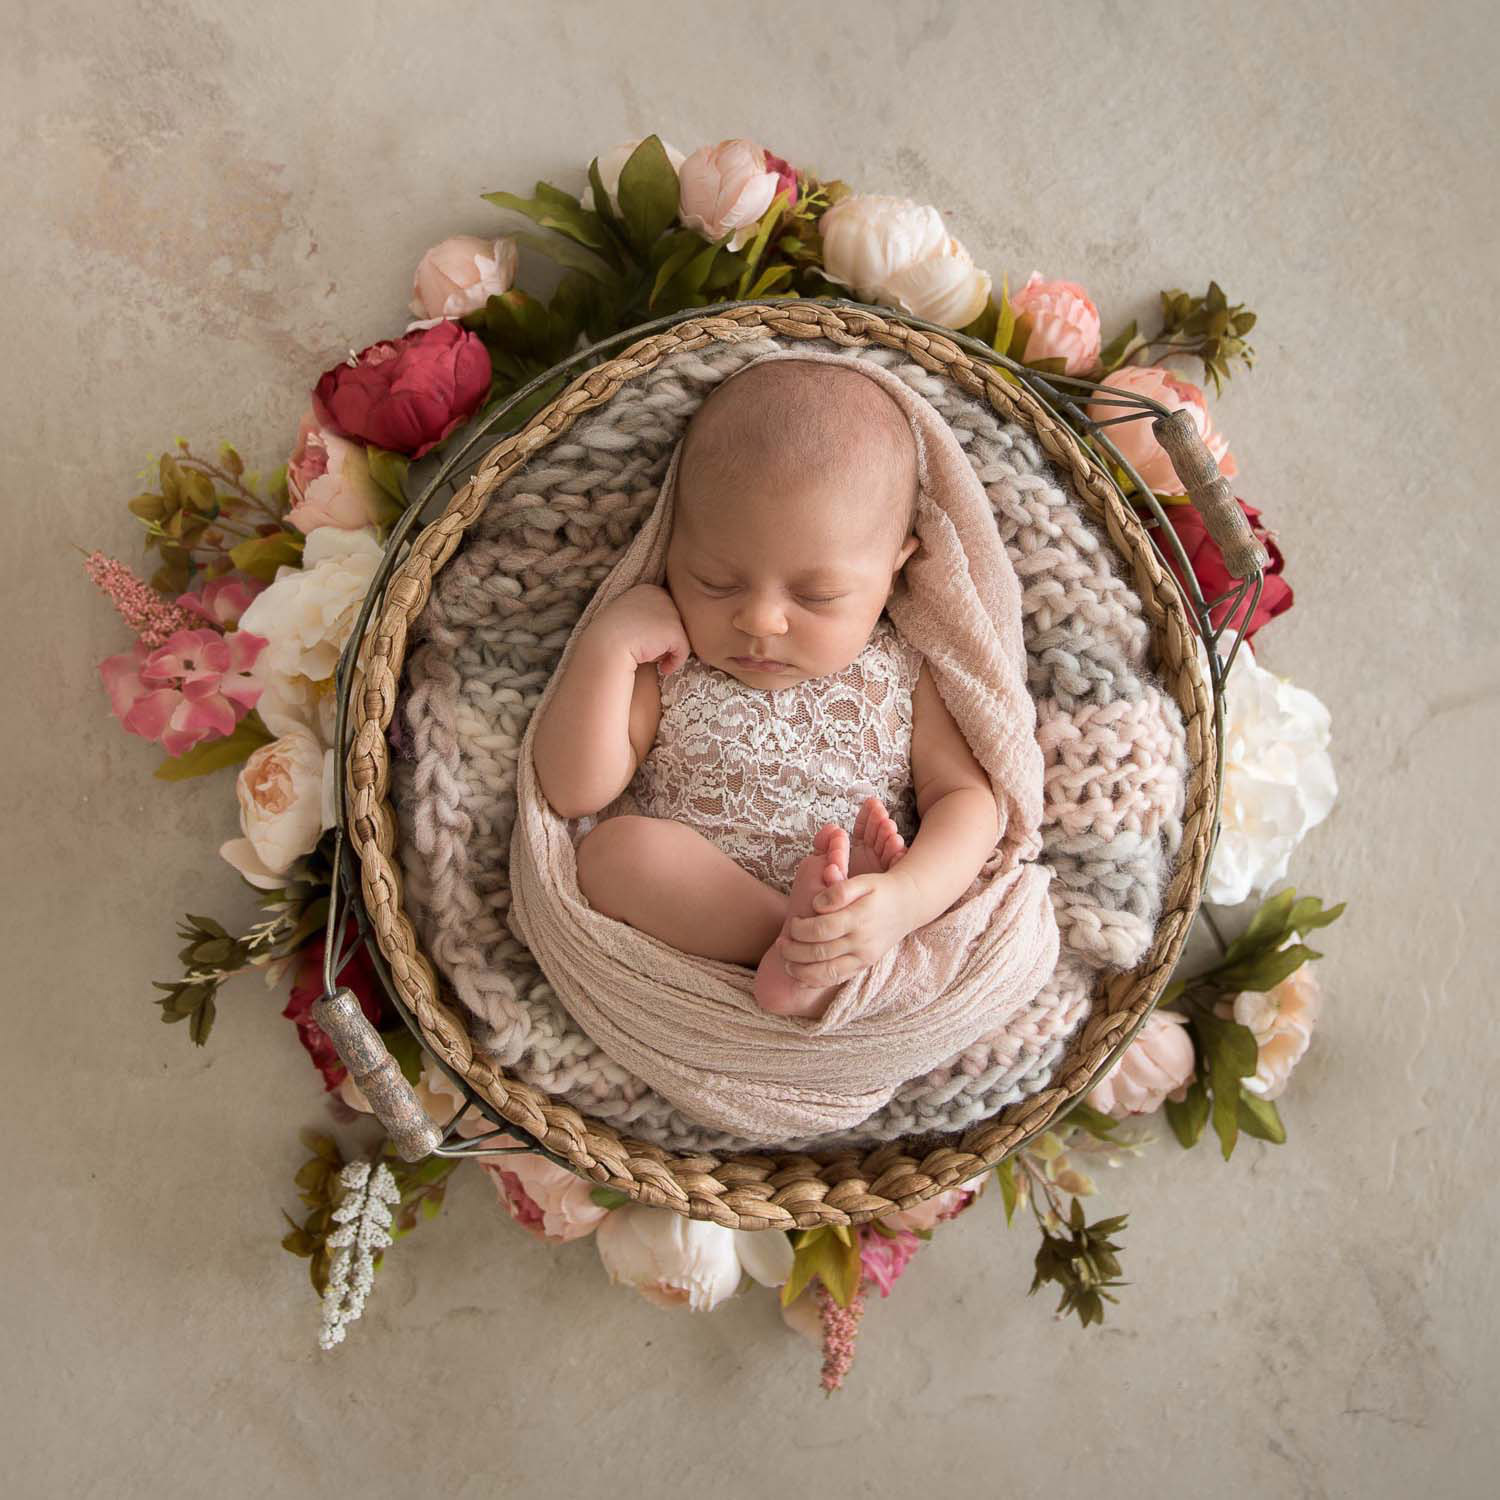 newborn photography by auckland photographer siobhan kelly